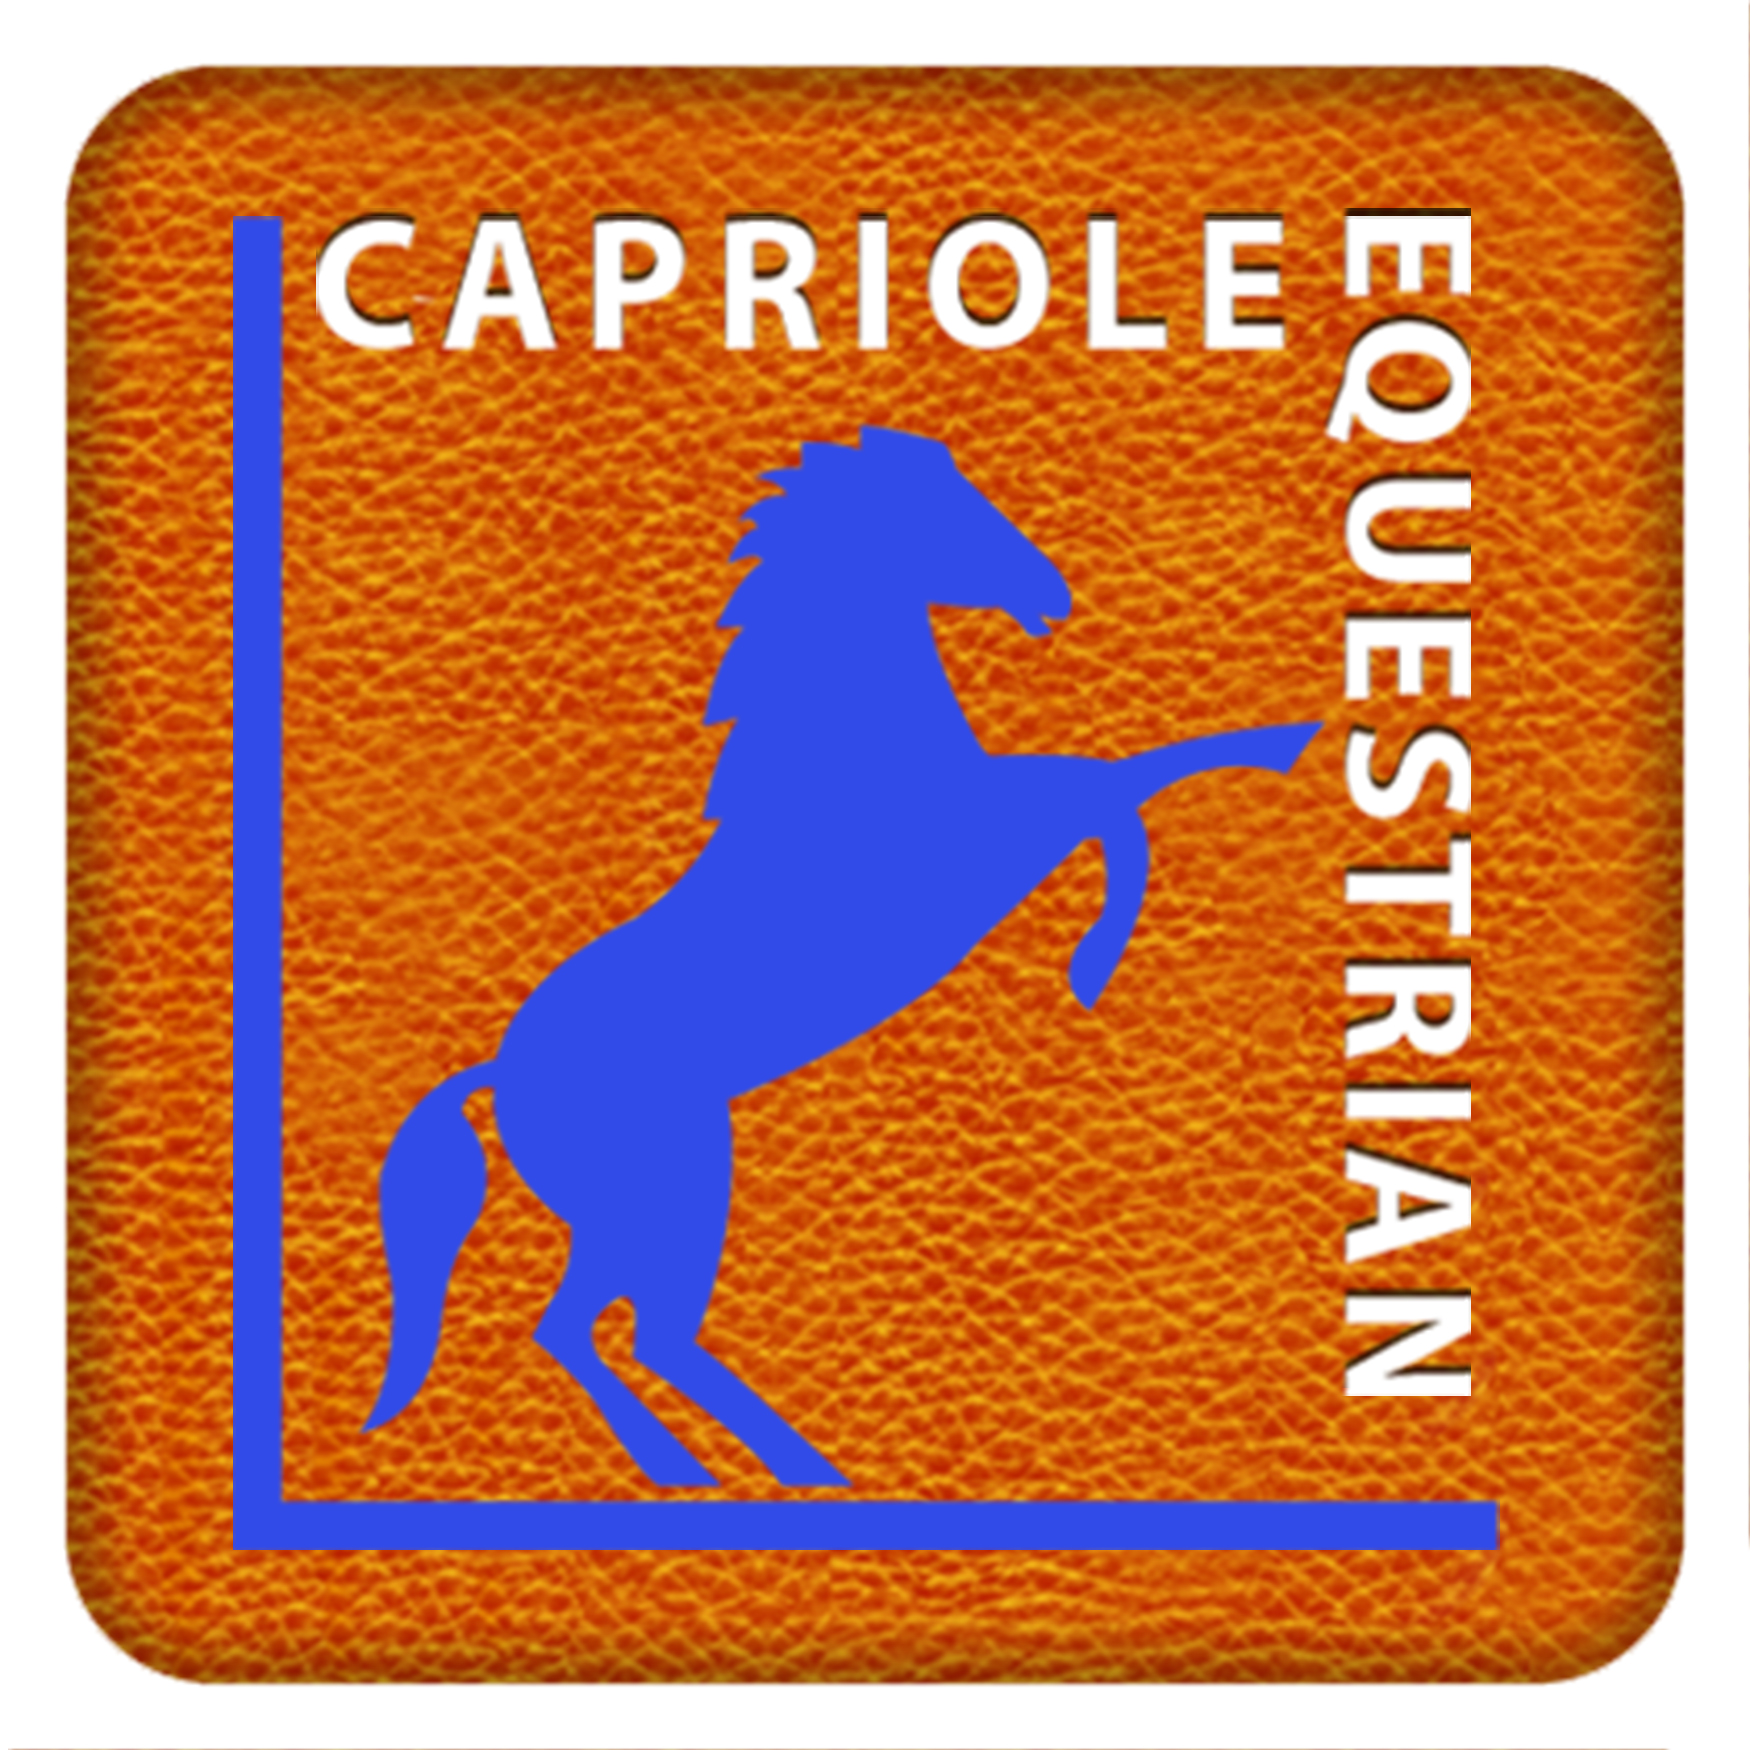 Capriole Equestrian